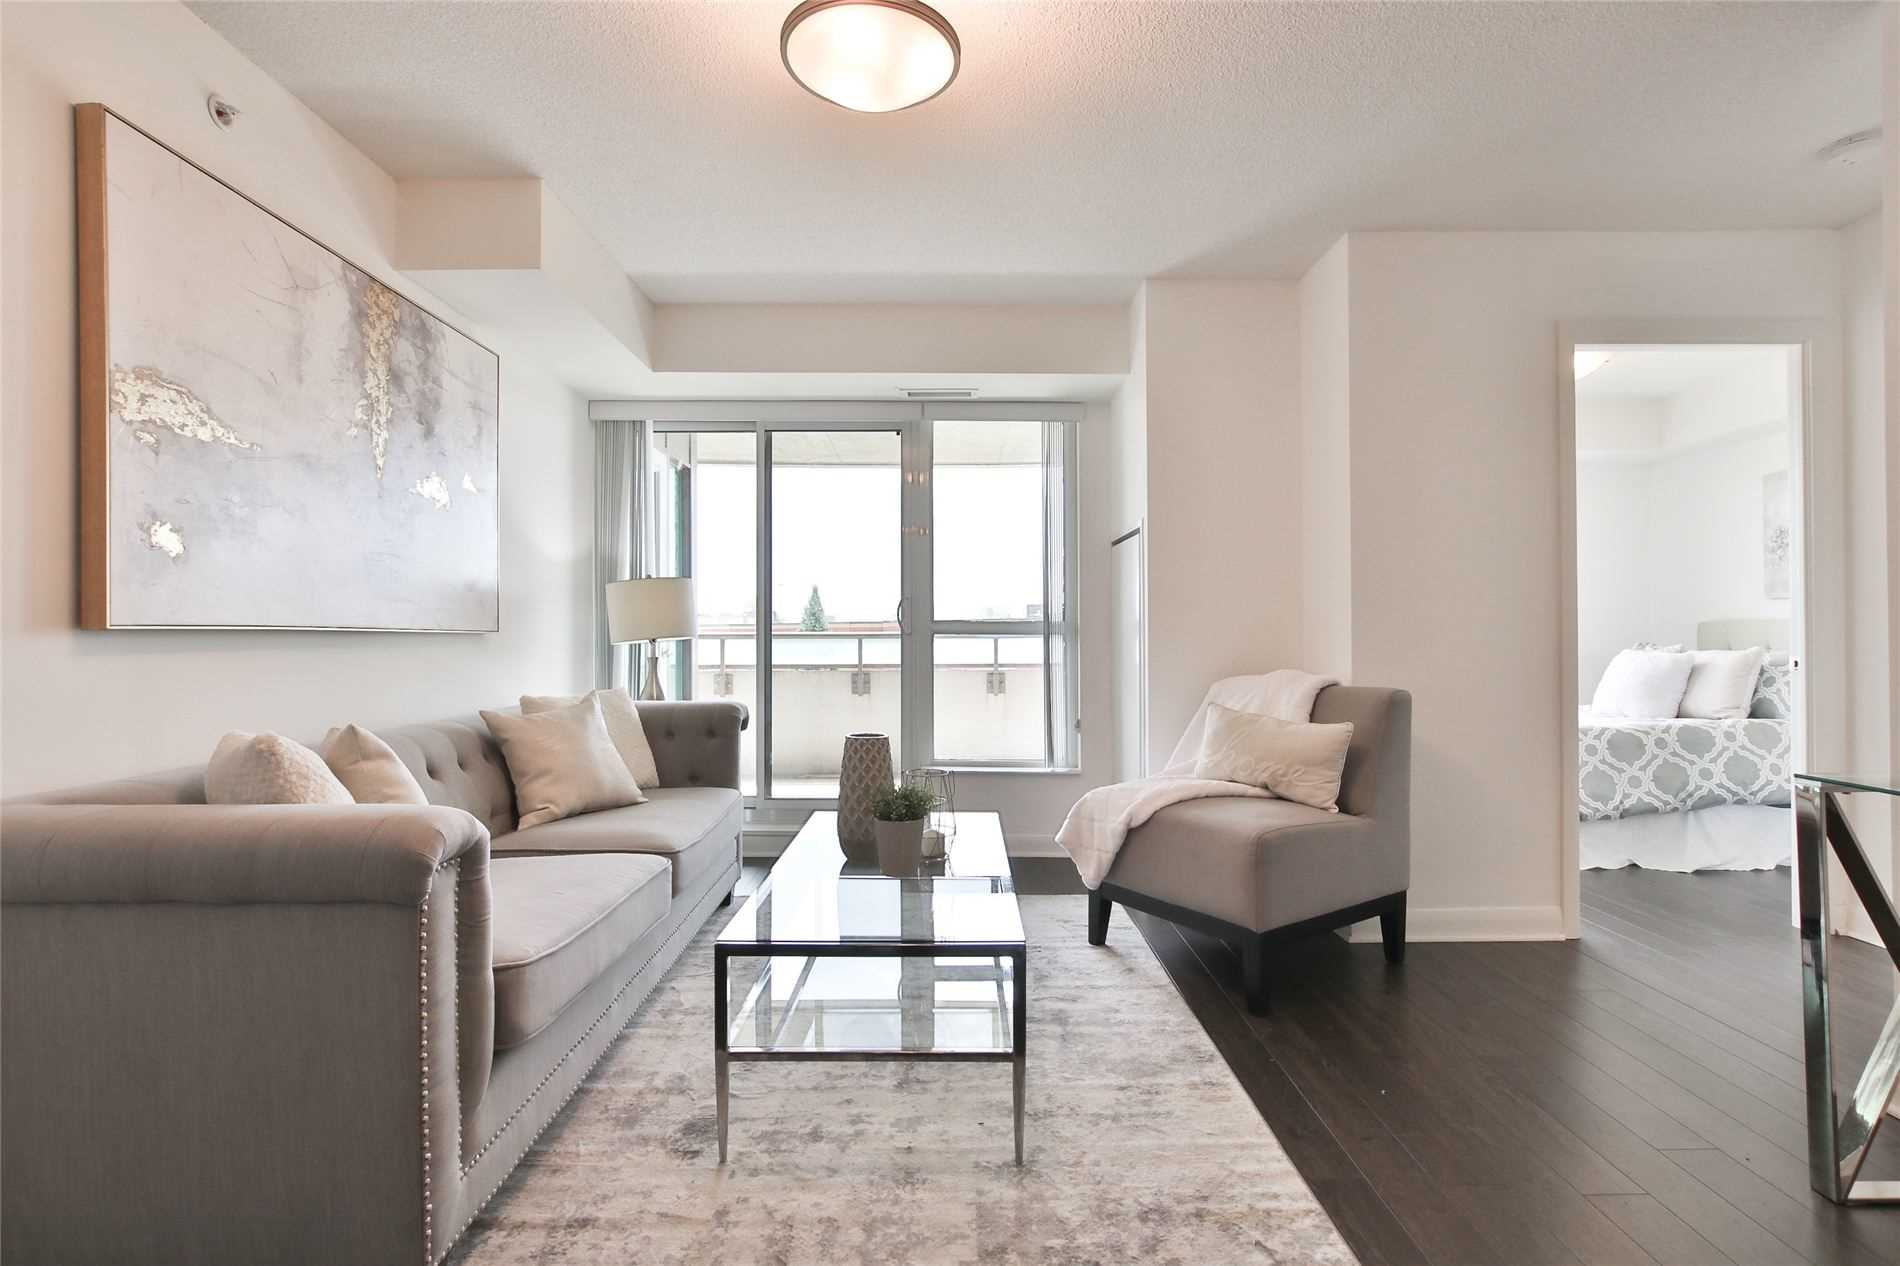 209 - 75 Norman Bethune Ave - Beaver Creek Business Park Condo Apt for sale, 2 Bedrooms (N5305489) - #4